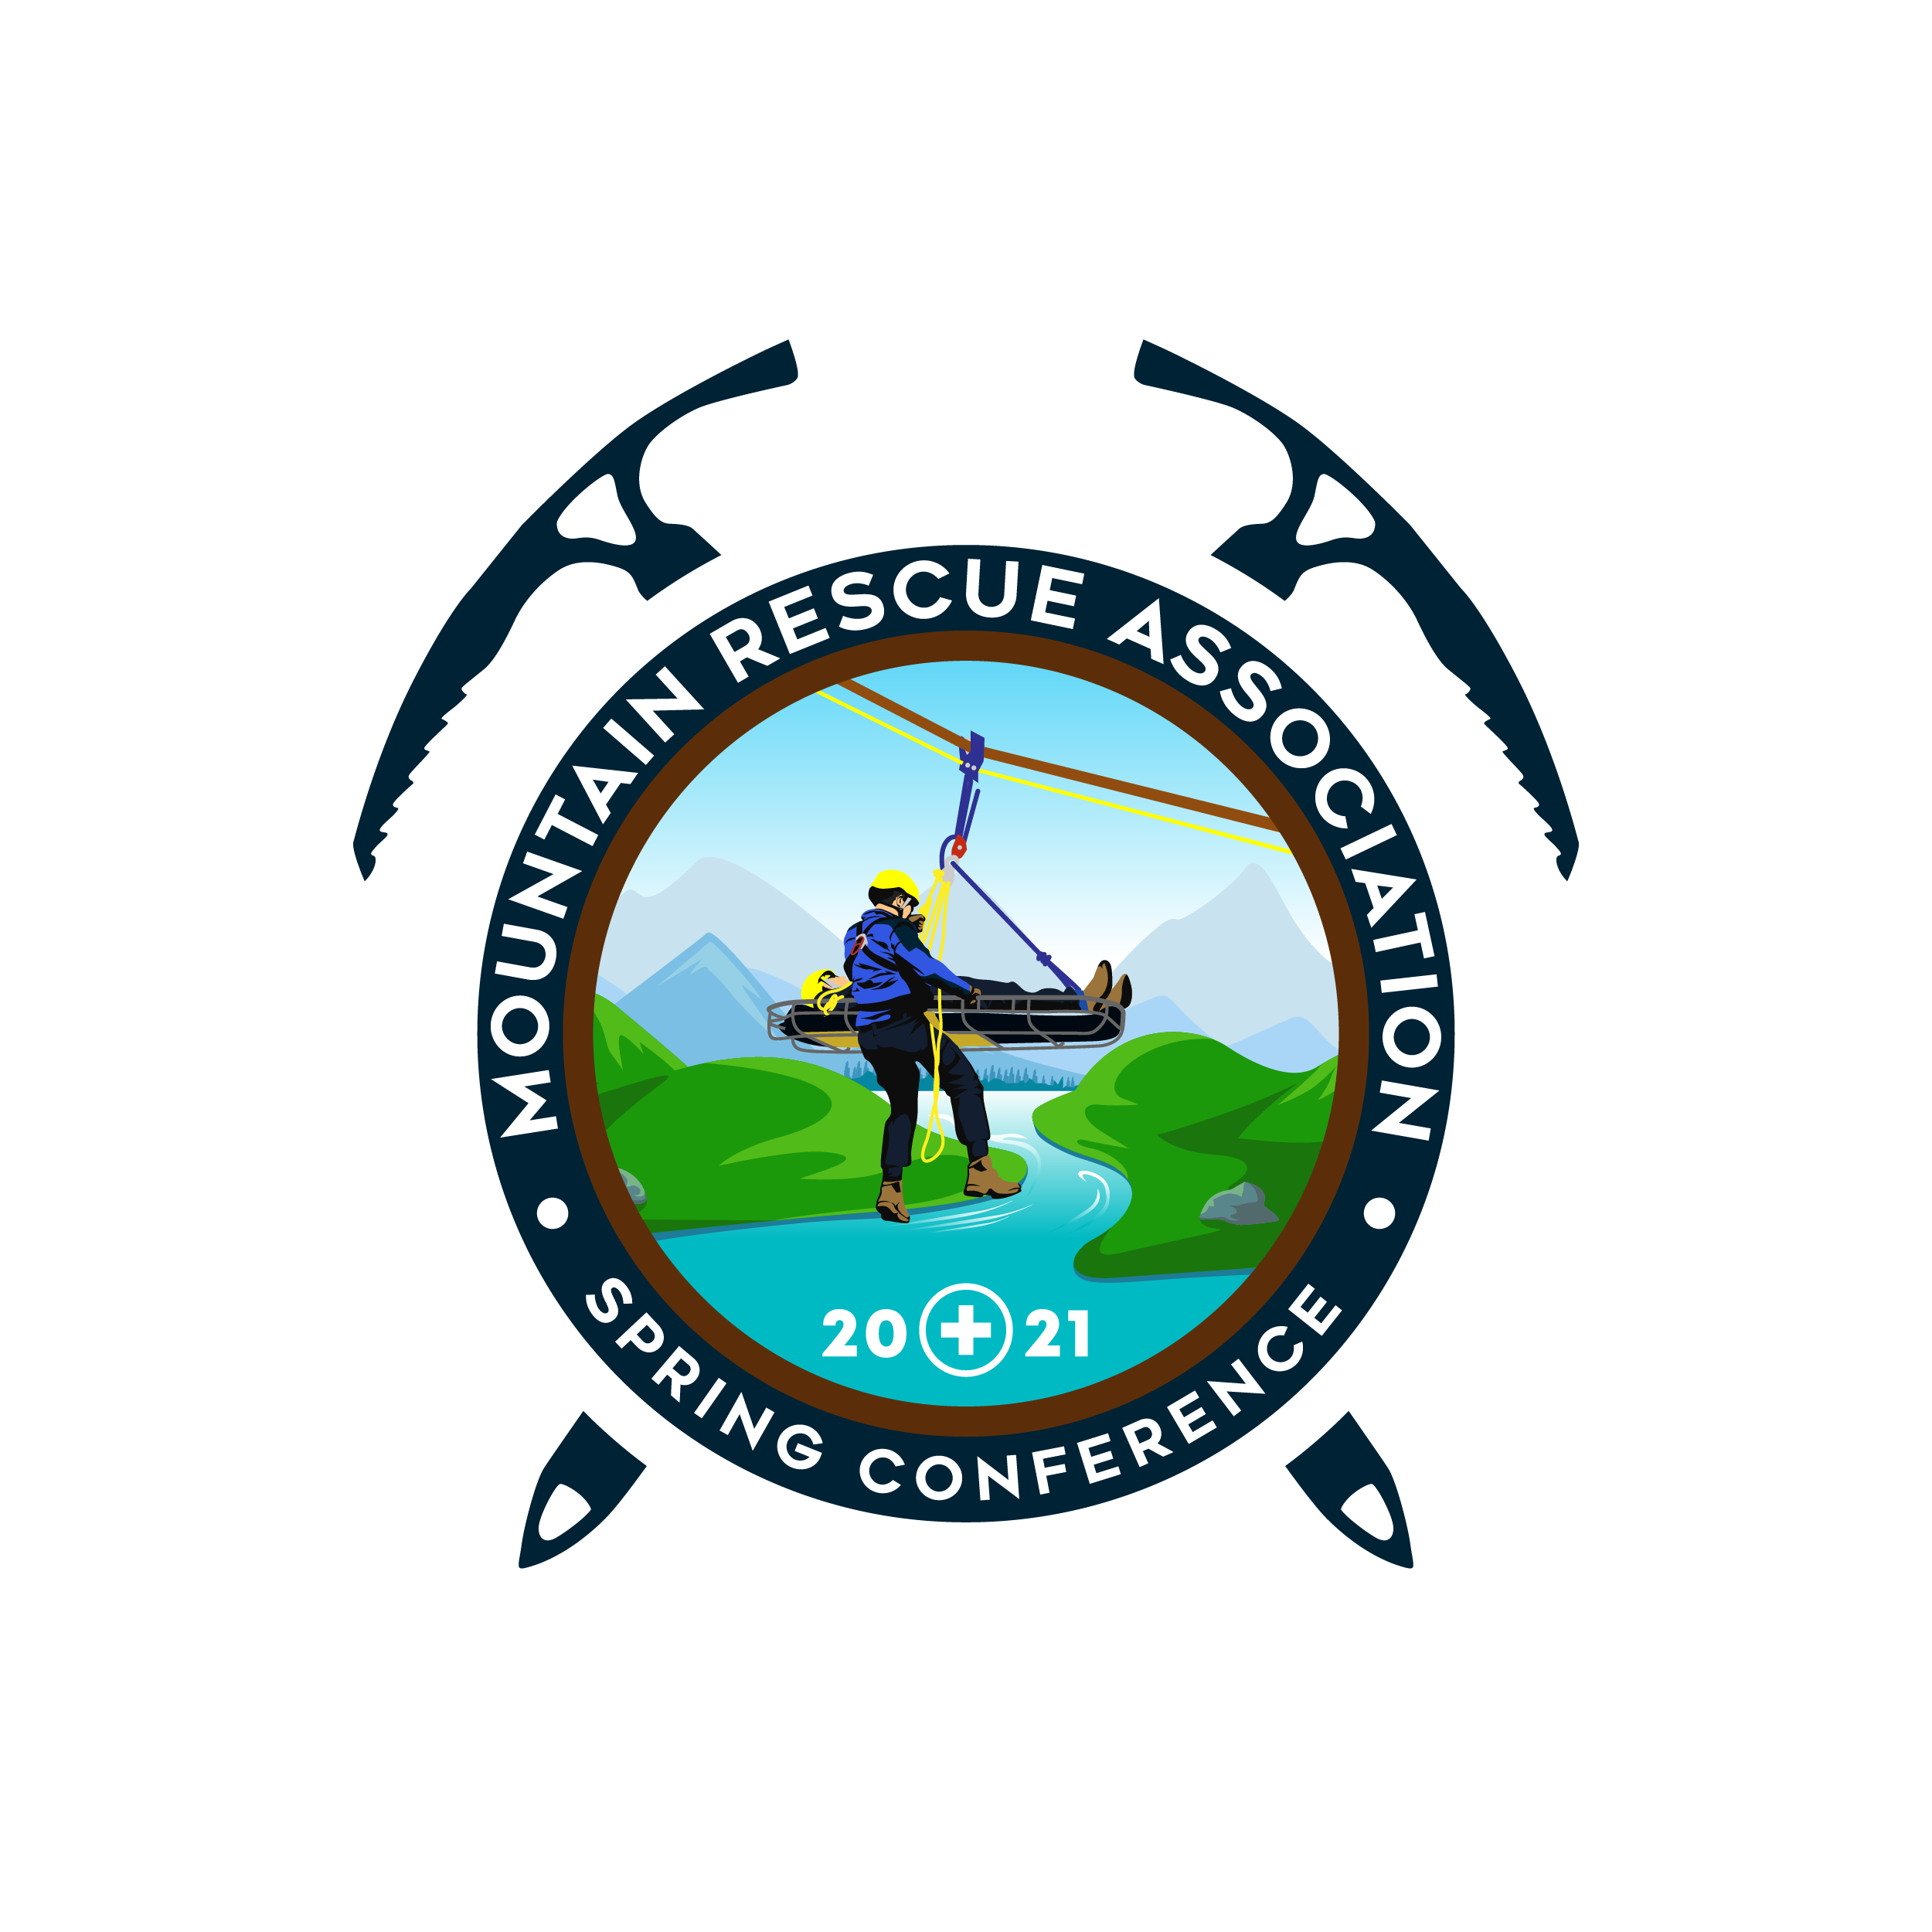 Updates to the MRA conference logo